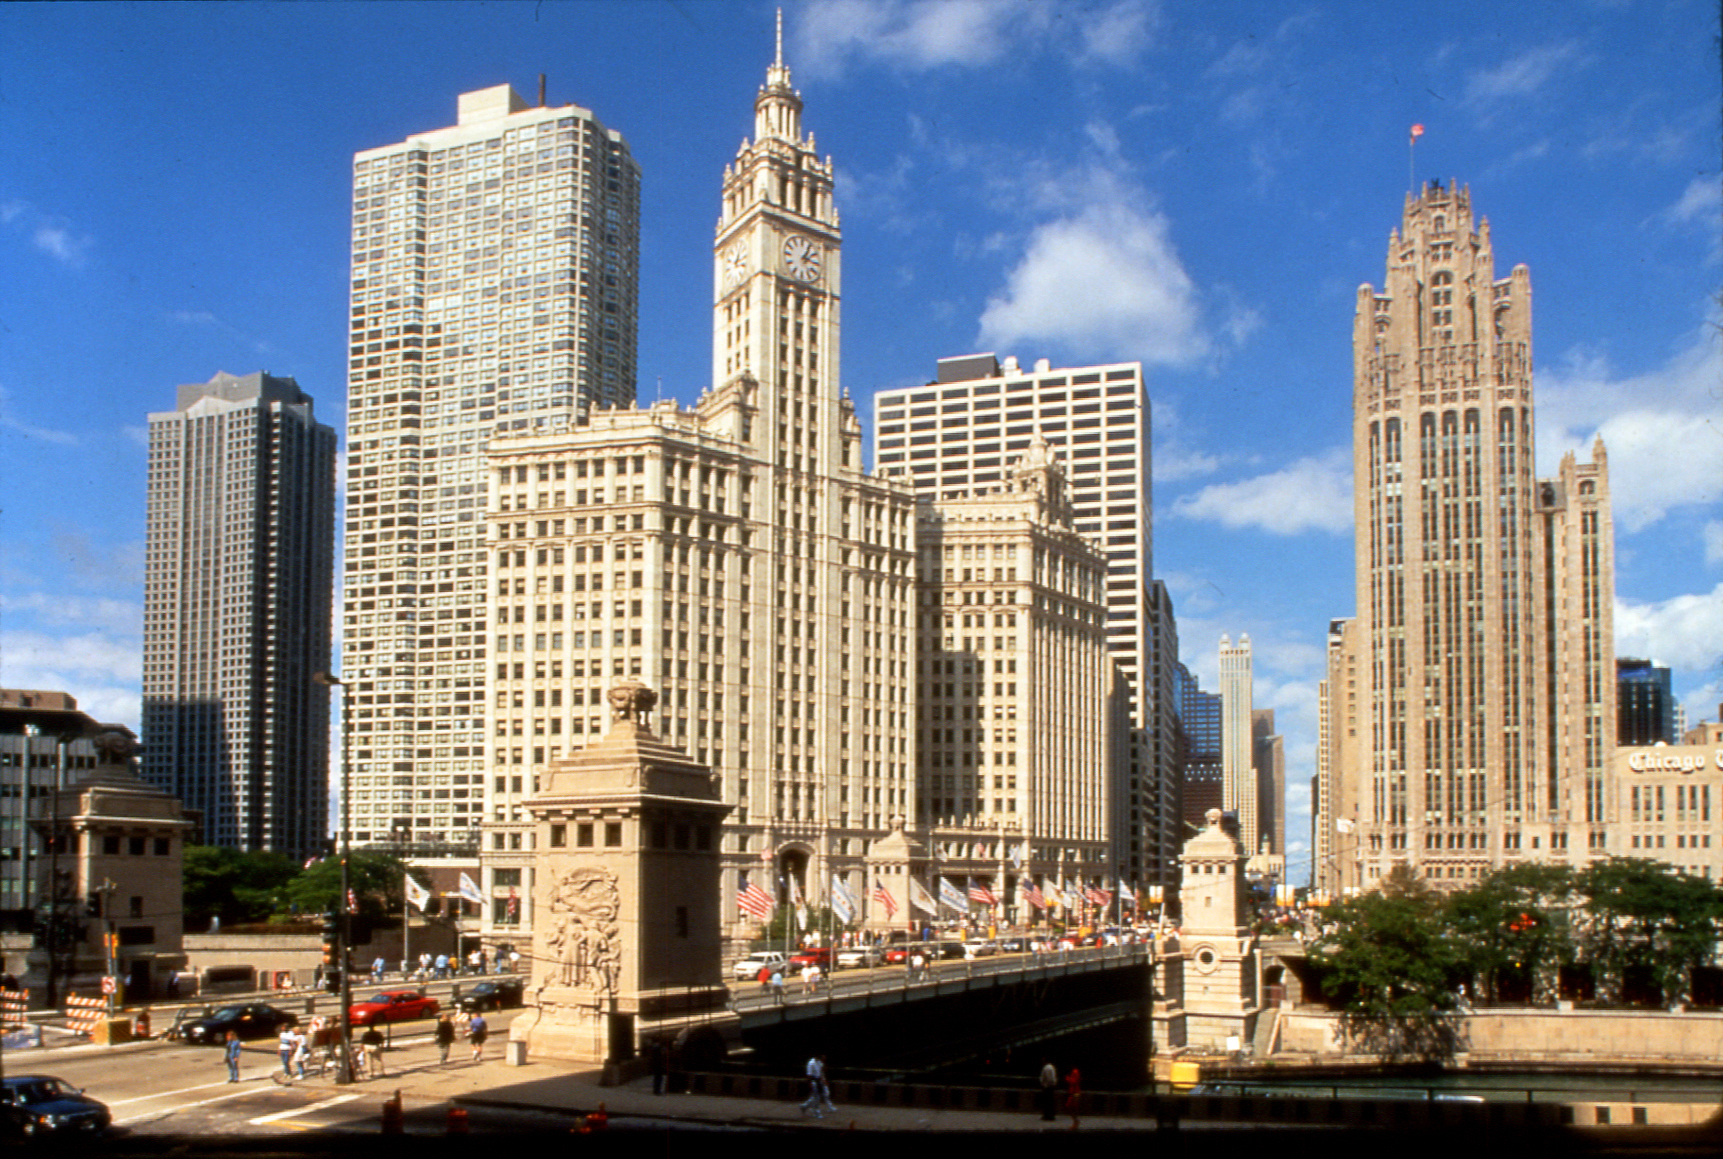 Find Chicago's most beautiful buildings